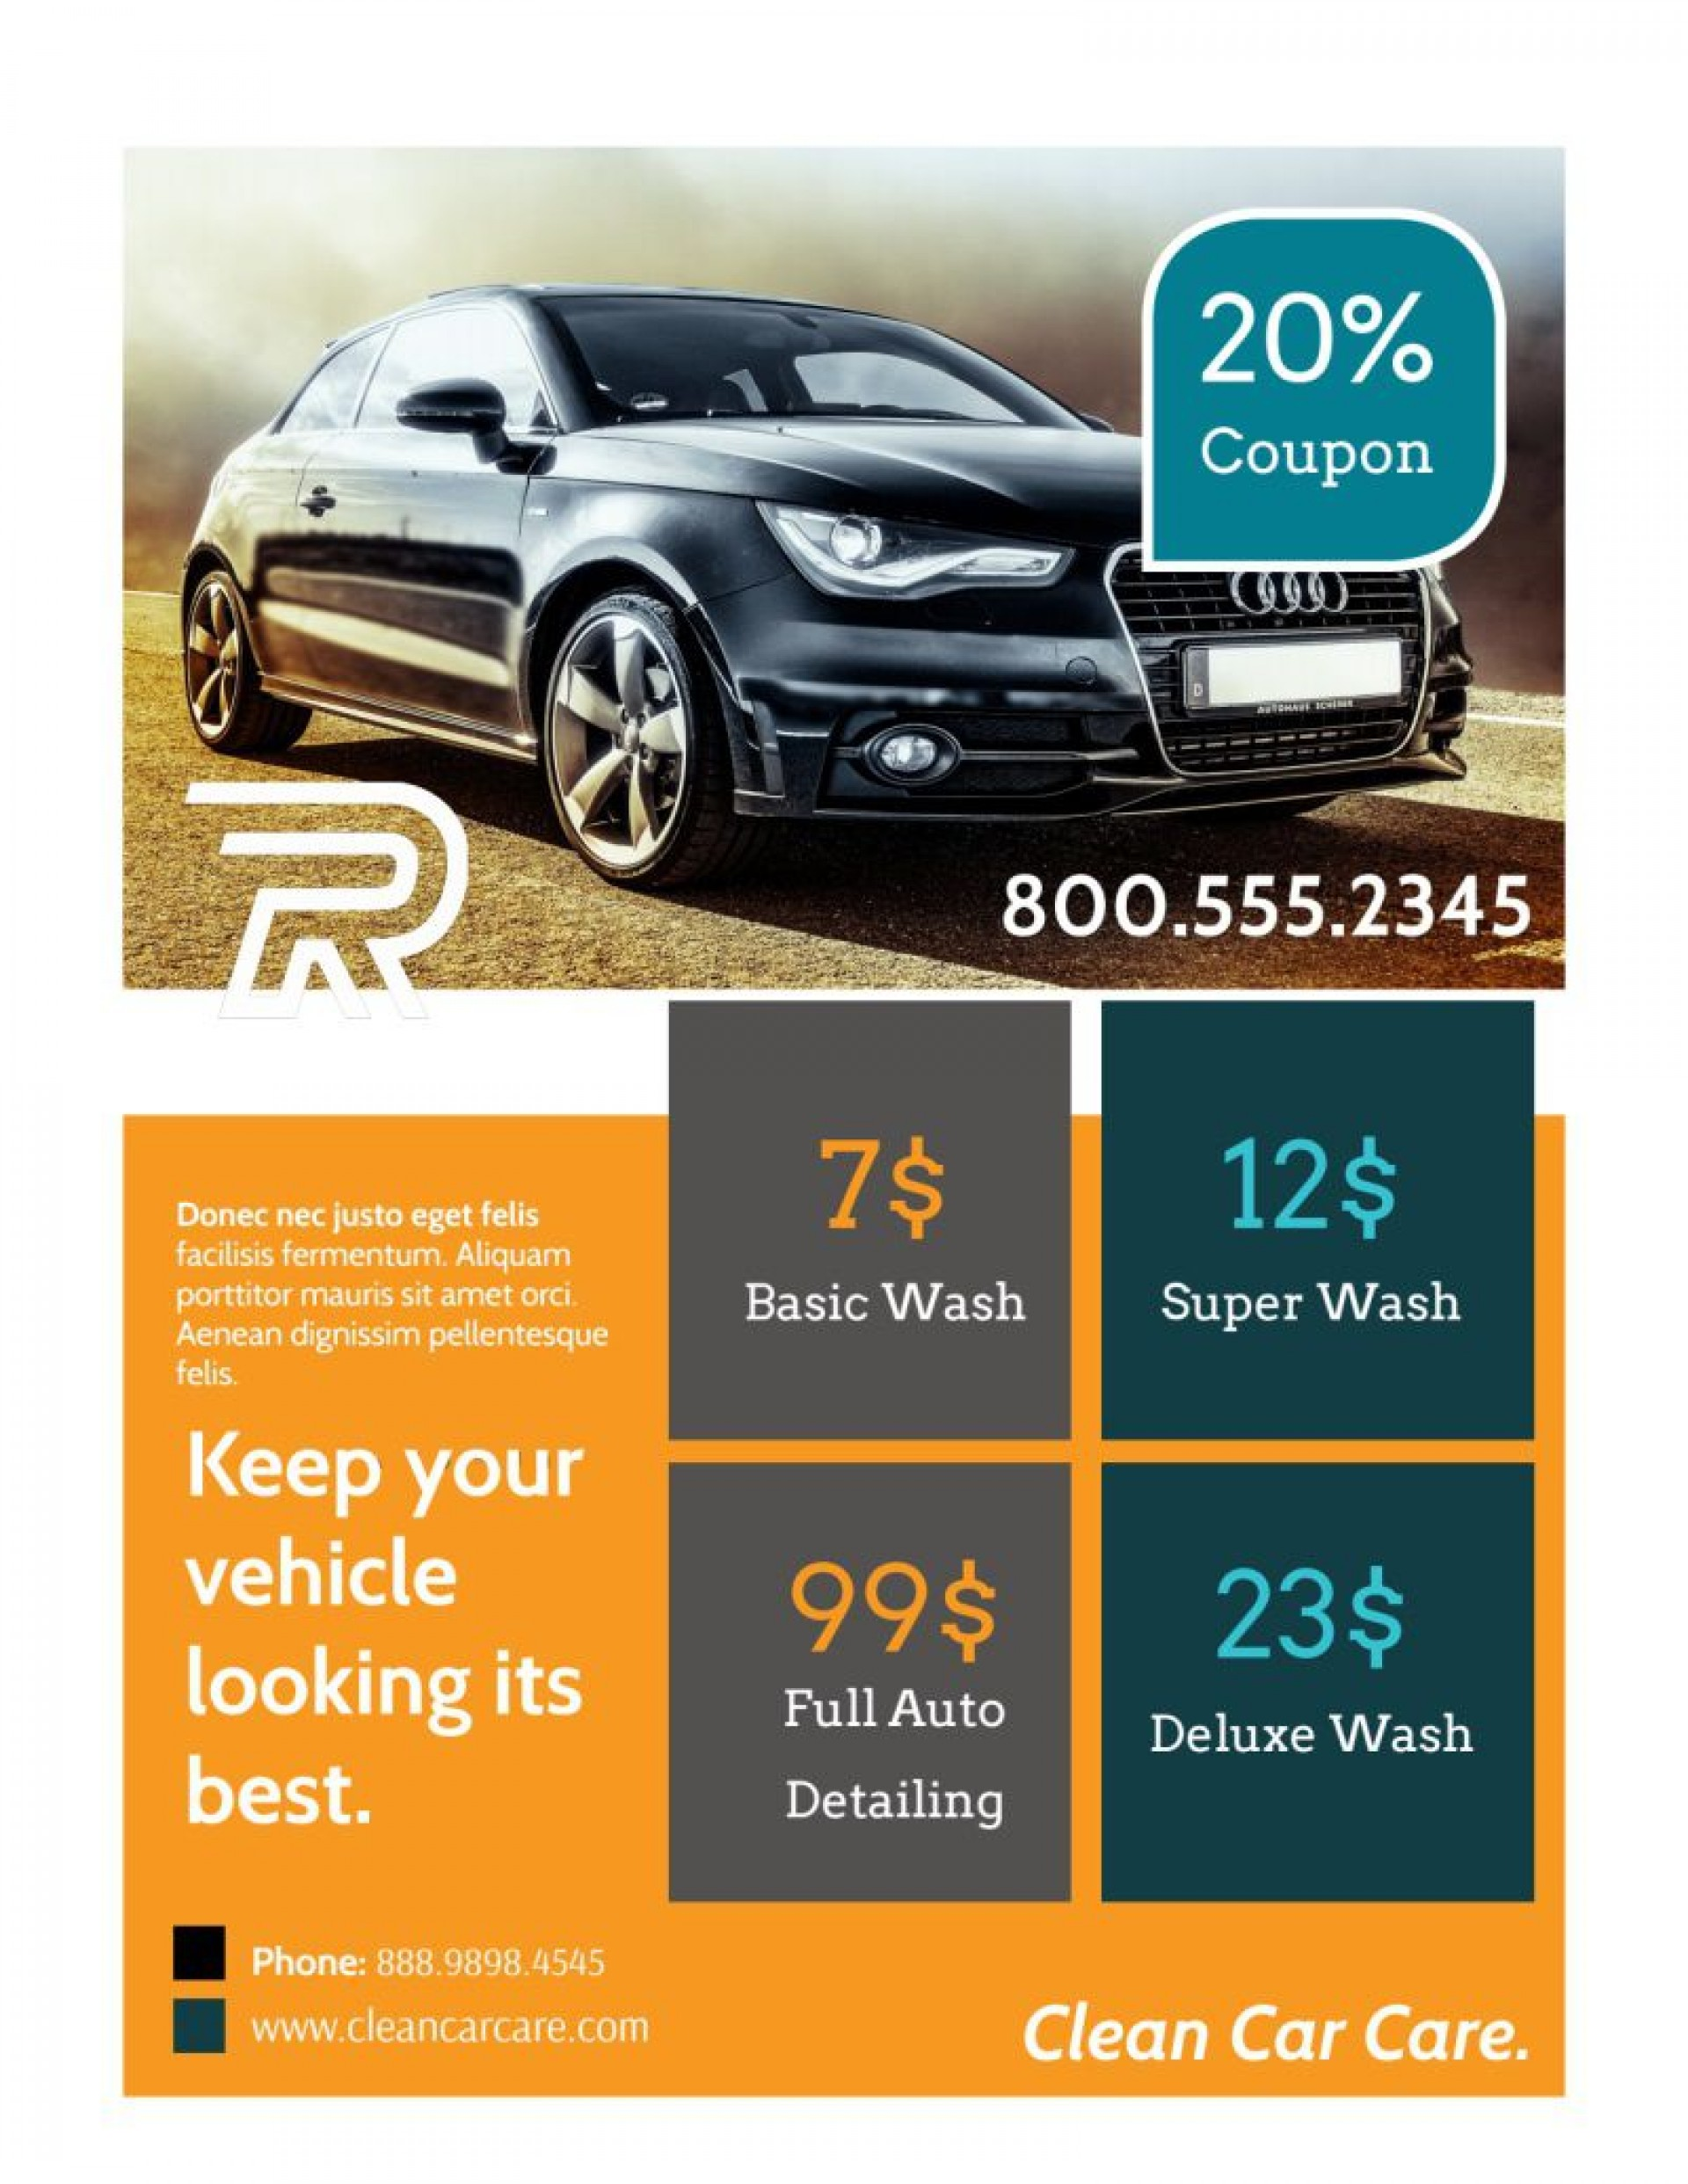 006 Top Car Wash Flyer Template High Definition  Free Fundraiser Download1920